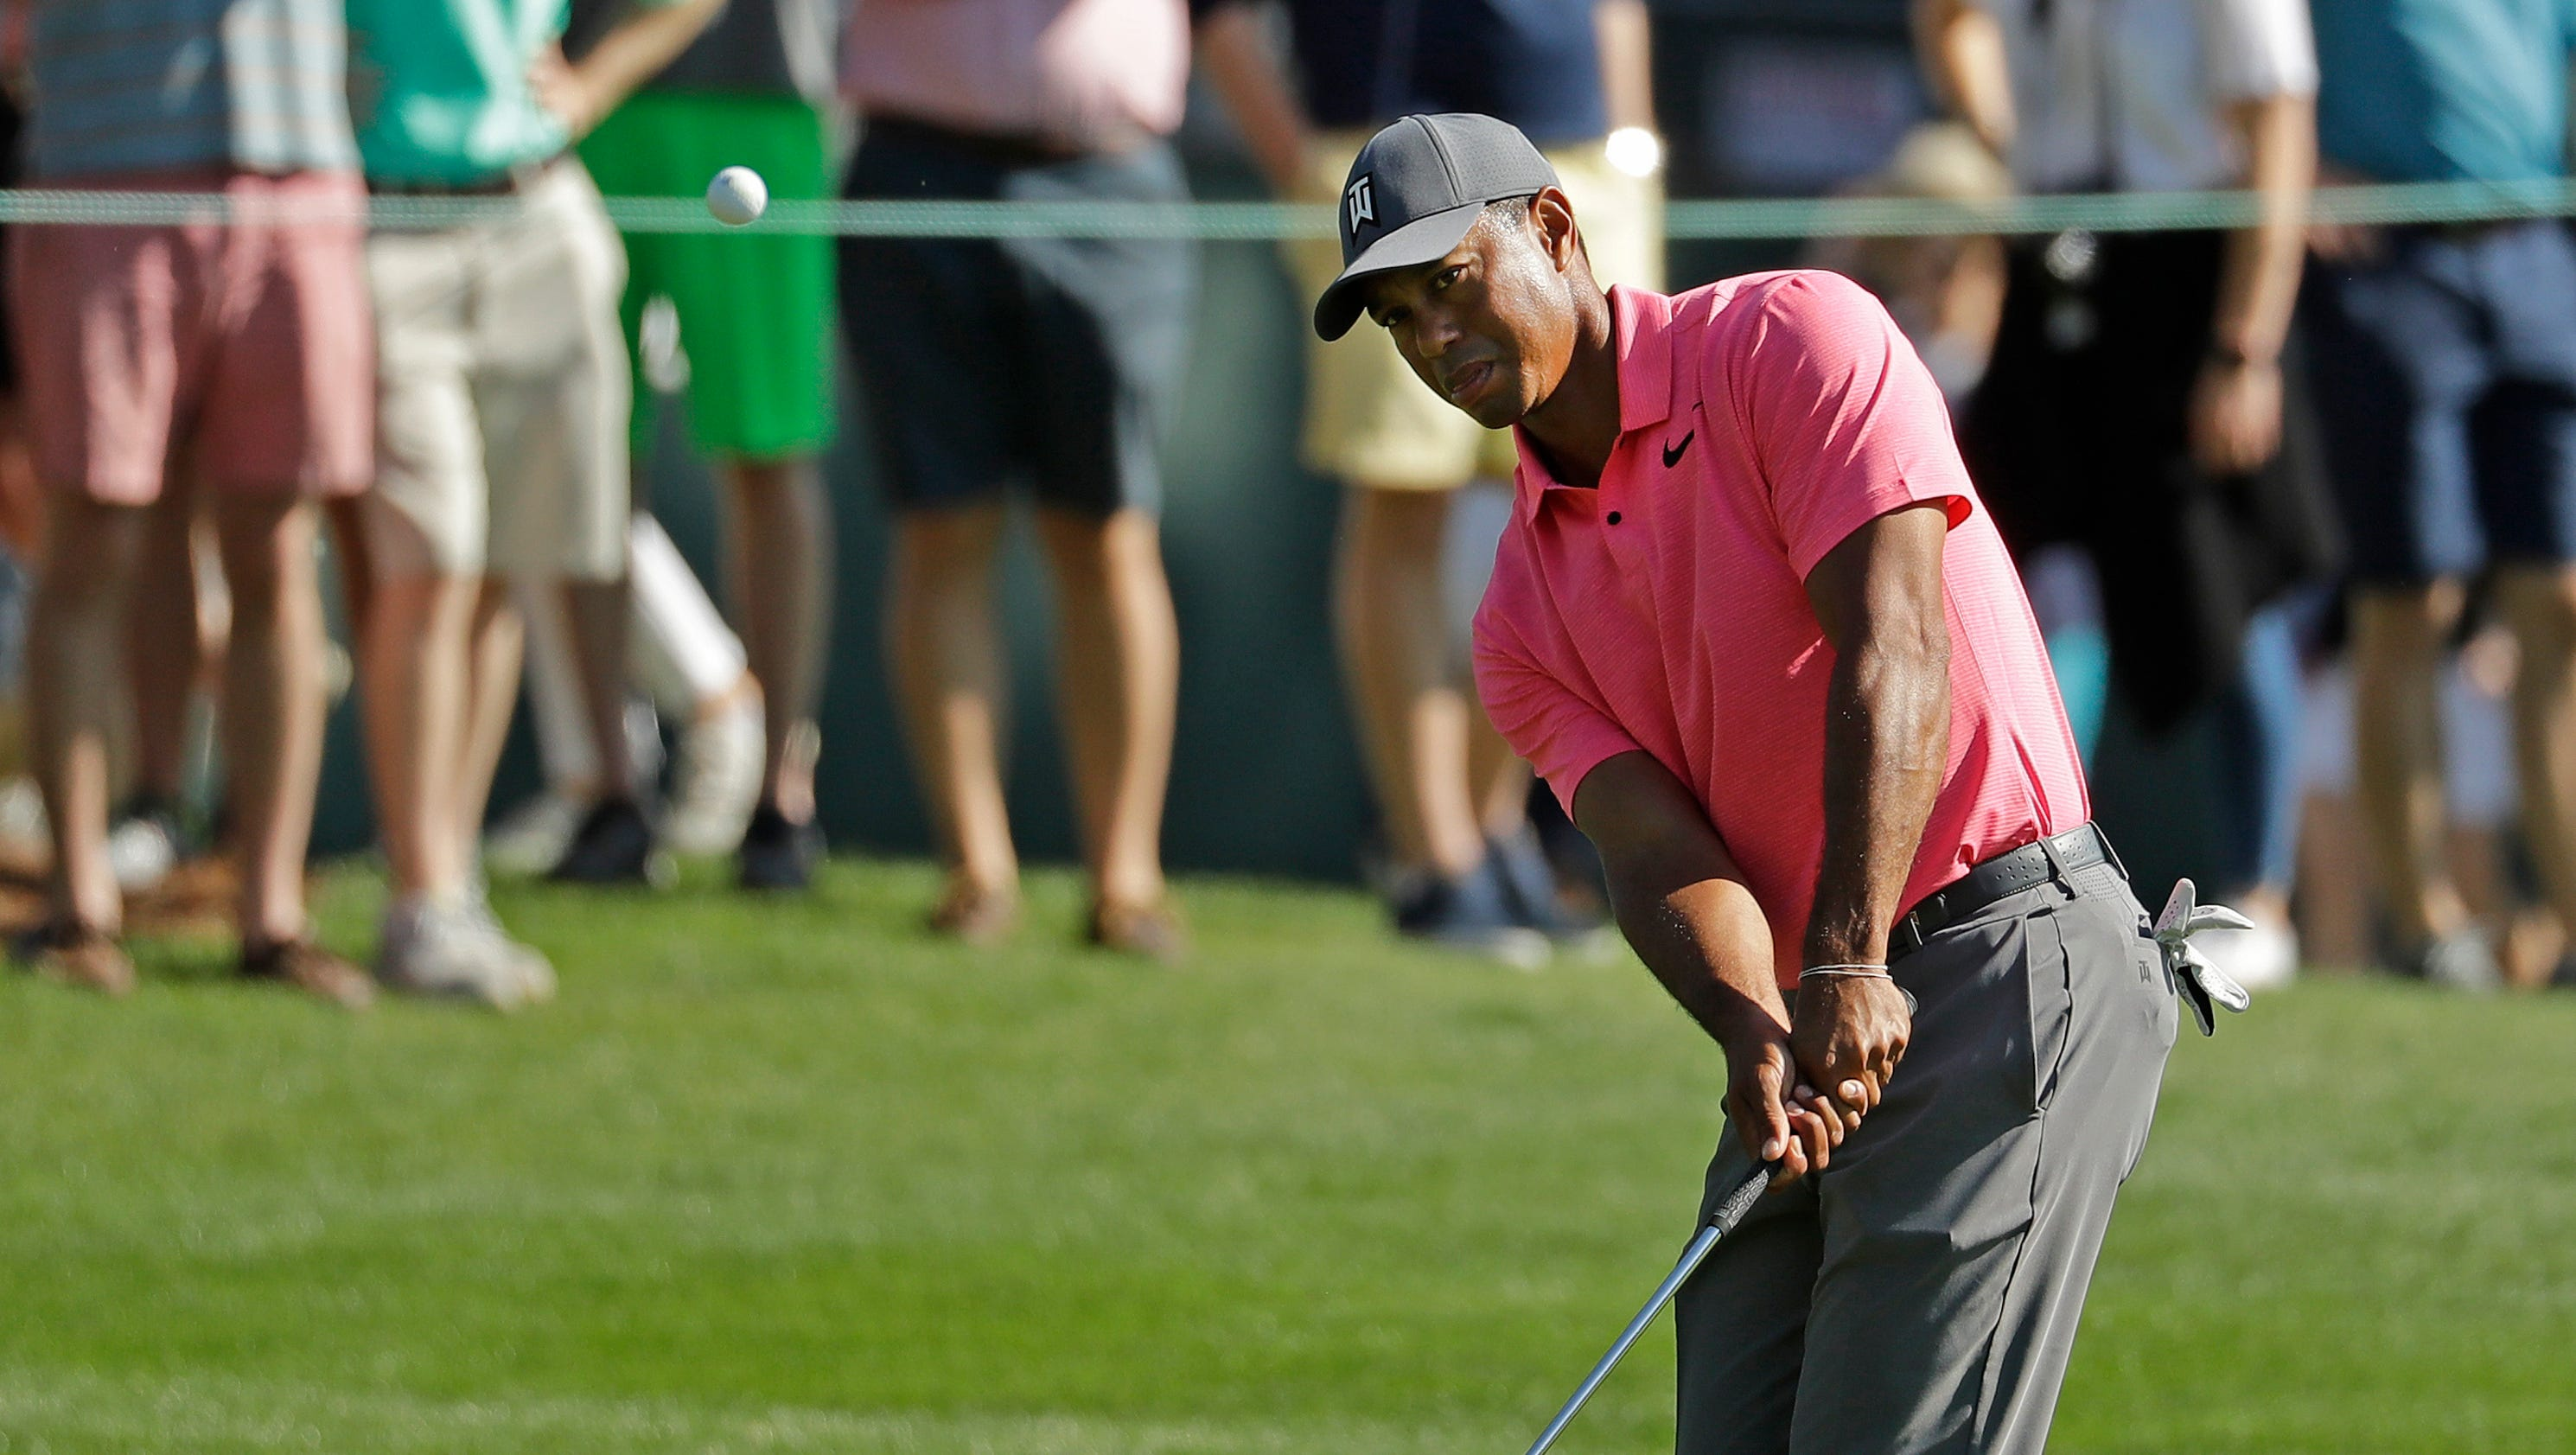 tiger woods returns to pga tour  new irons in hand